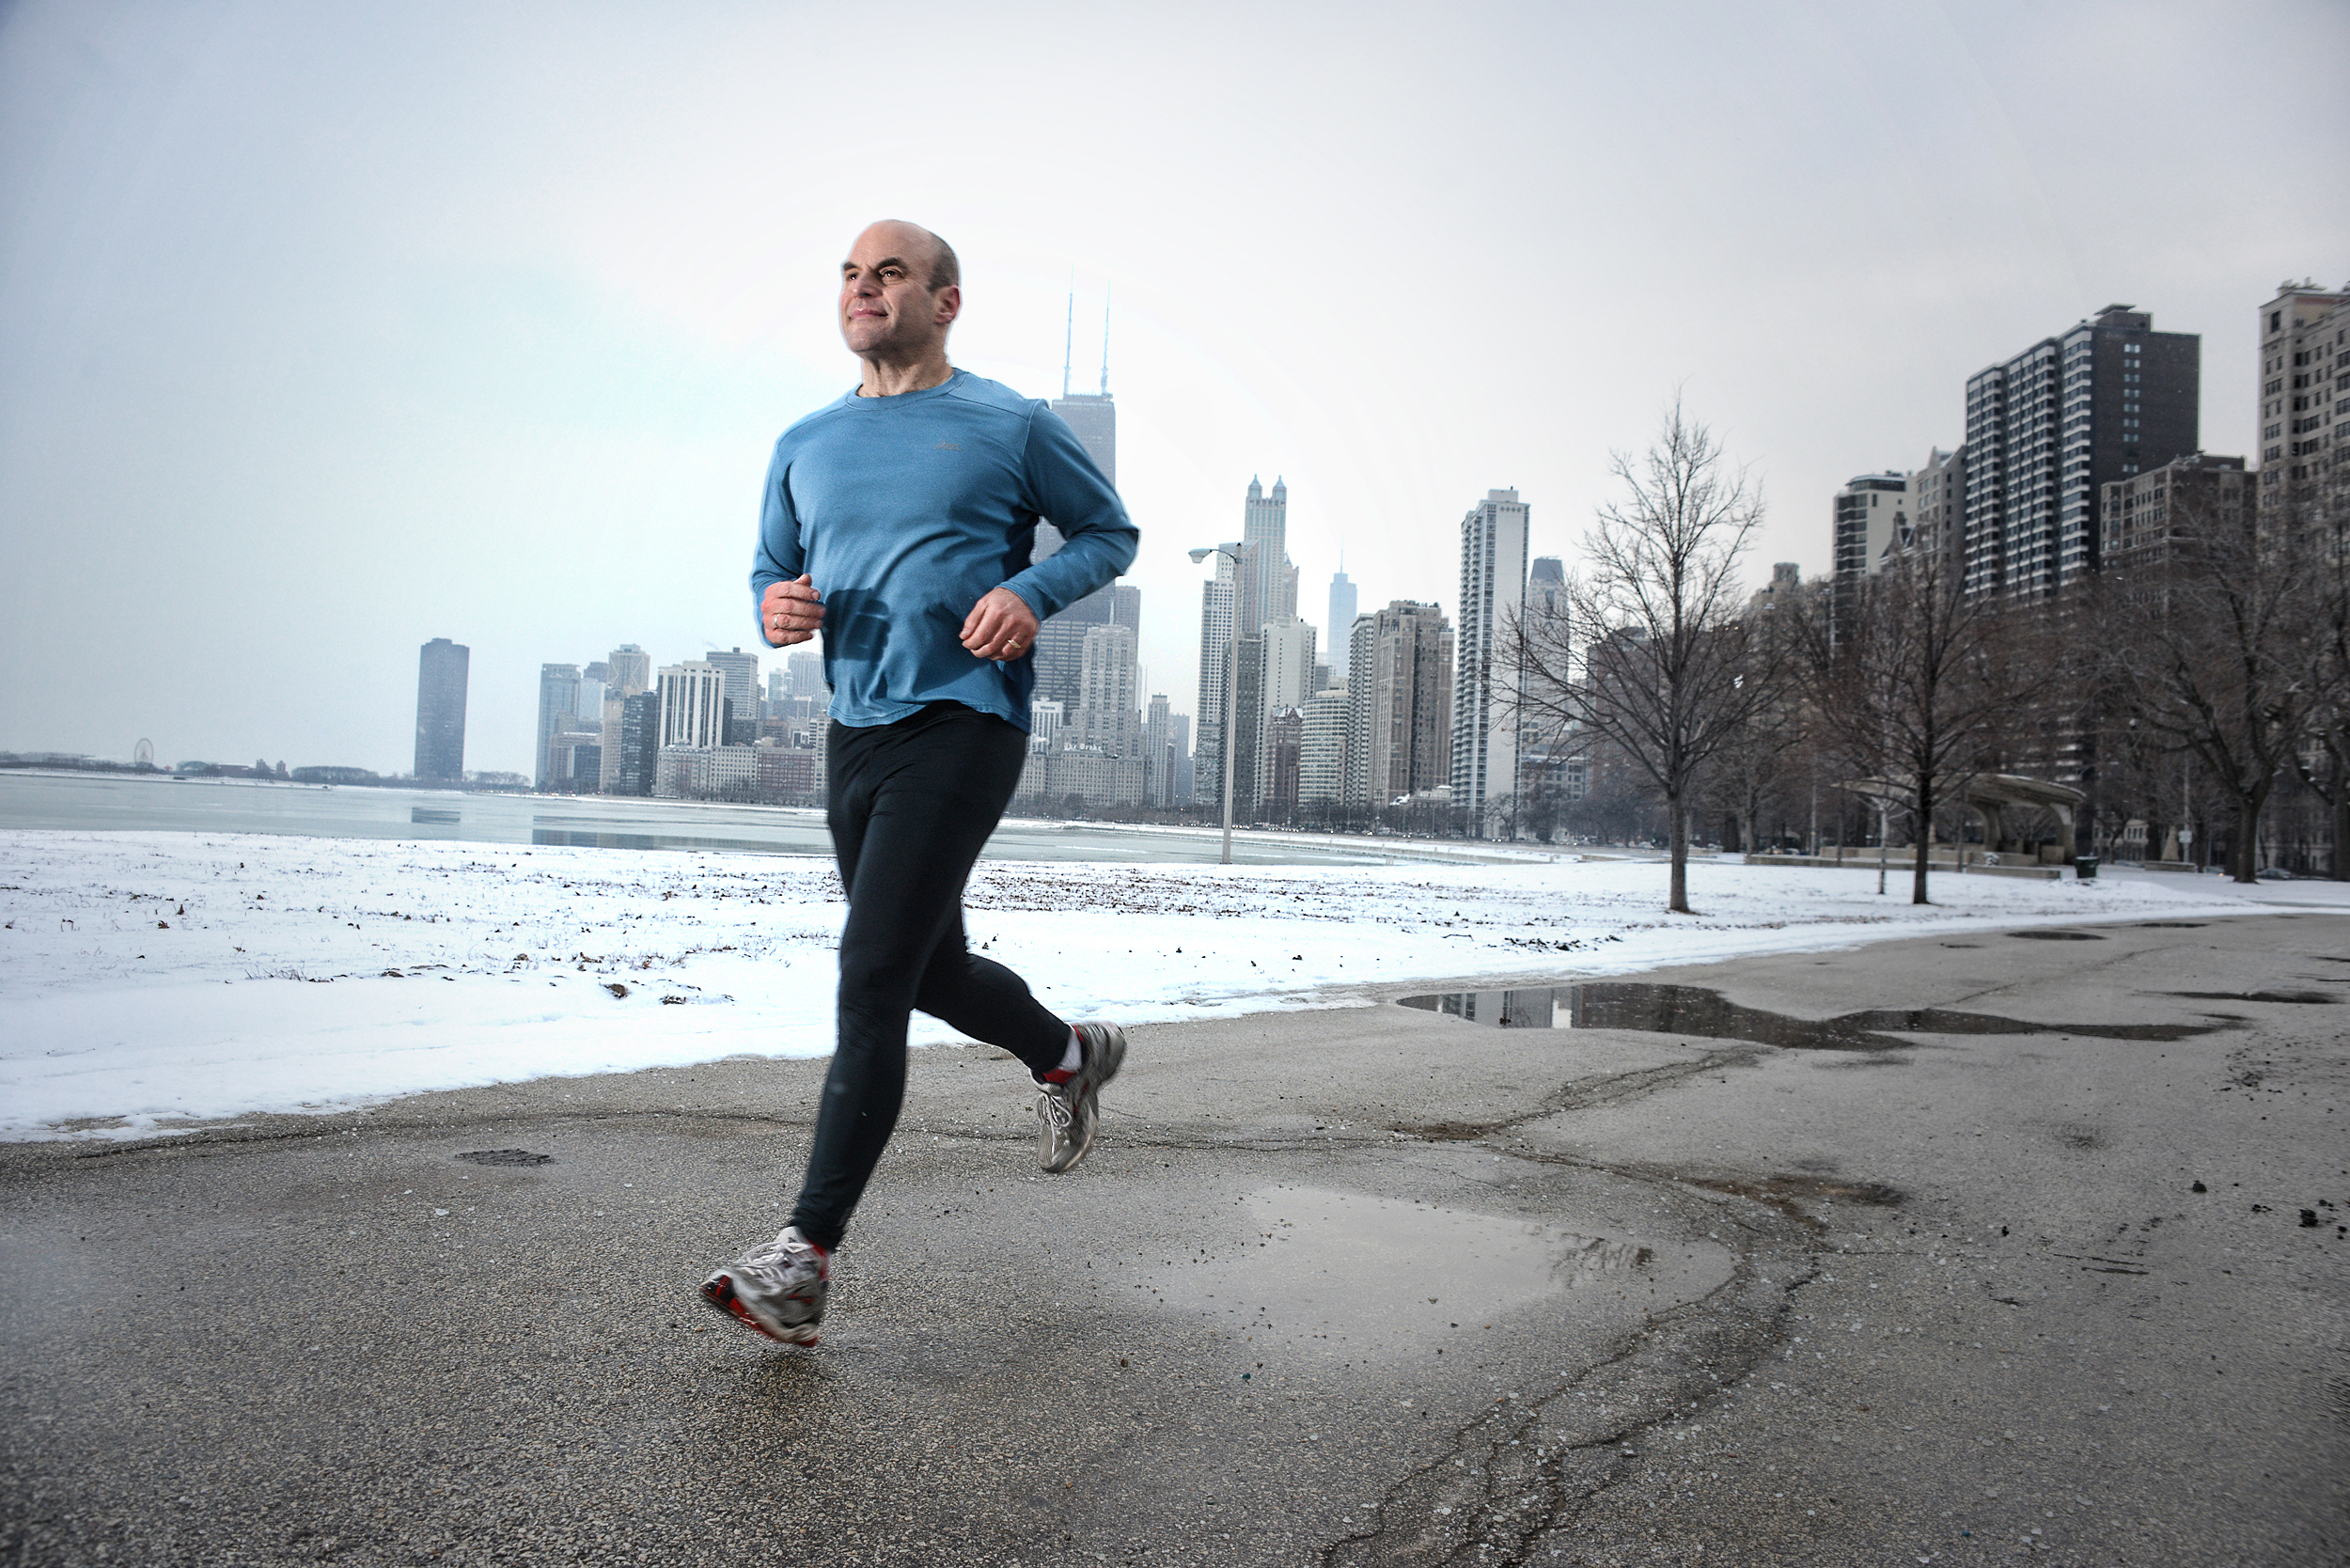 Should You Run Or Walk To Burn Fat And Lose Weight?